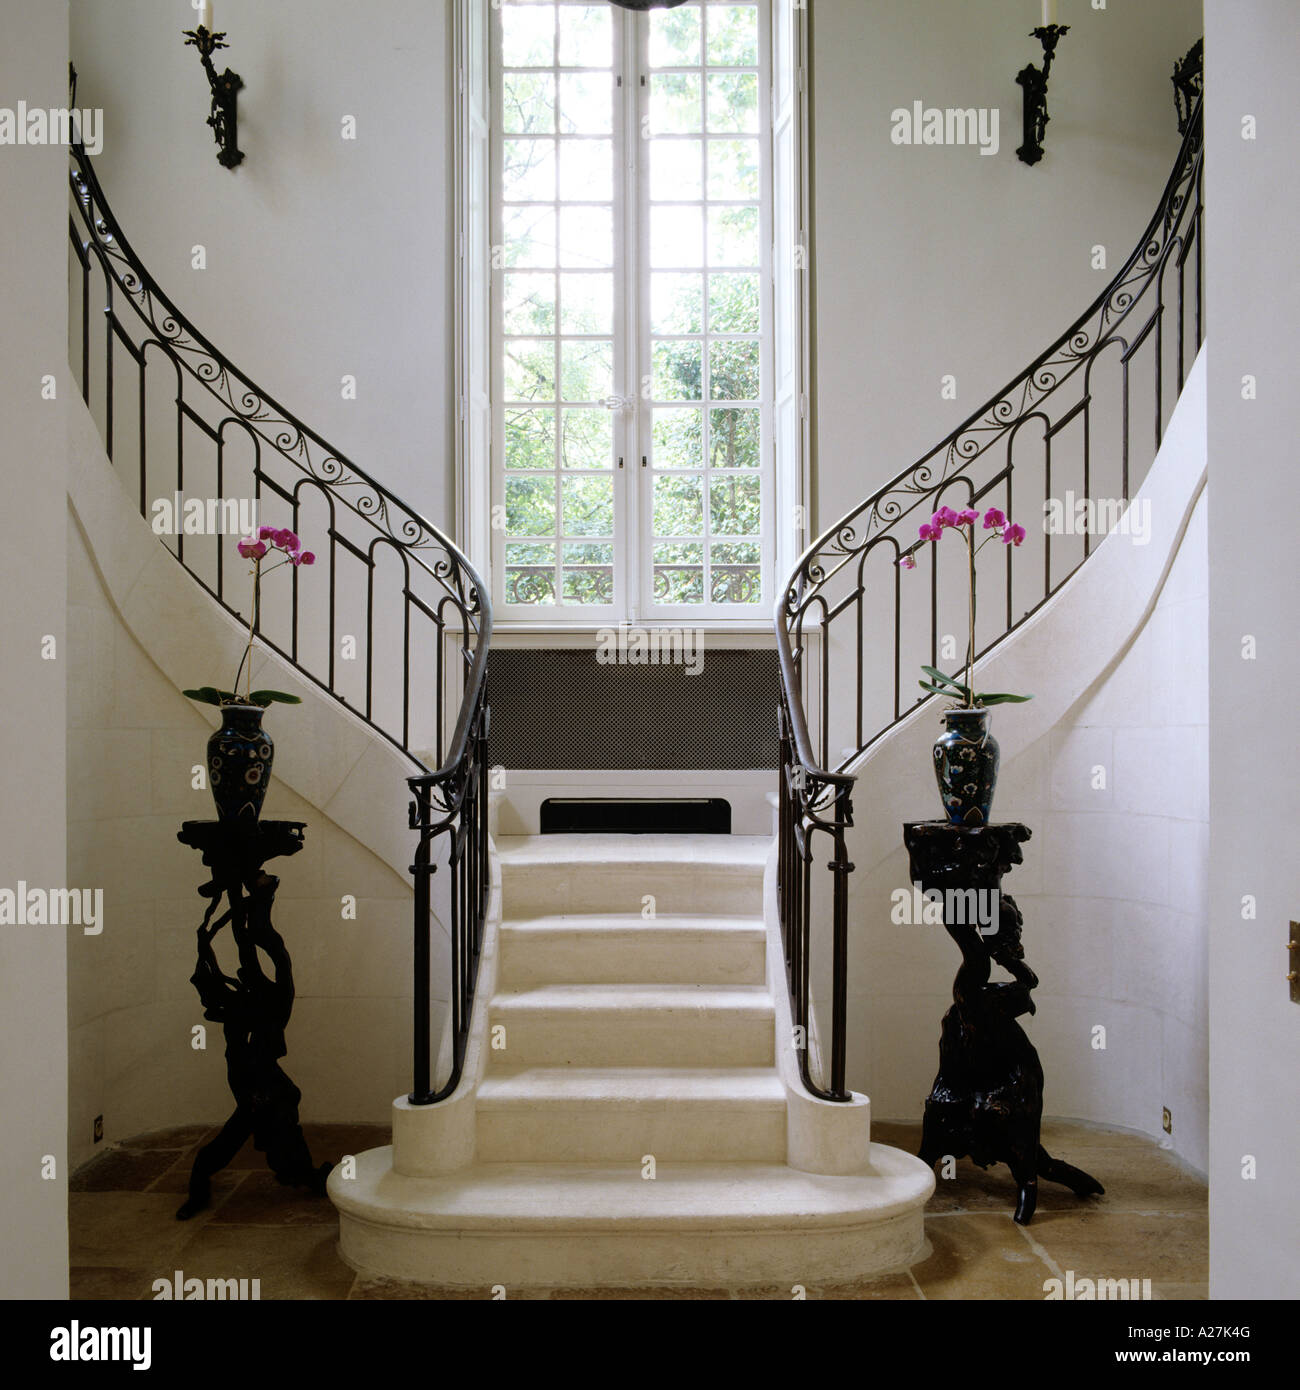 stock photo stone grand staircase with wrought iron banister and large paned window